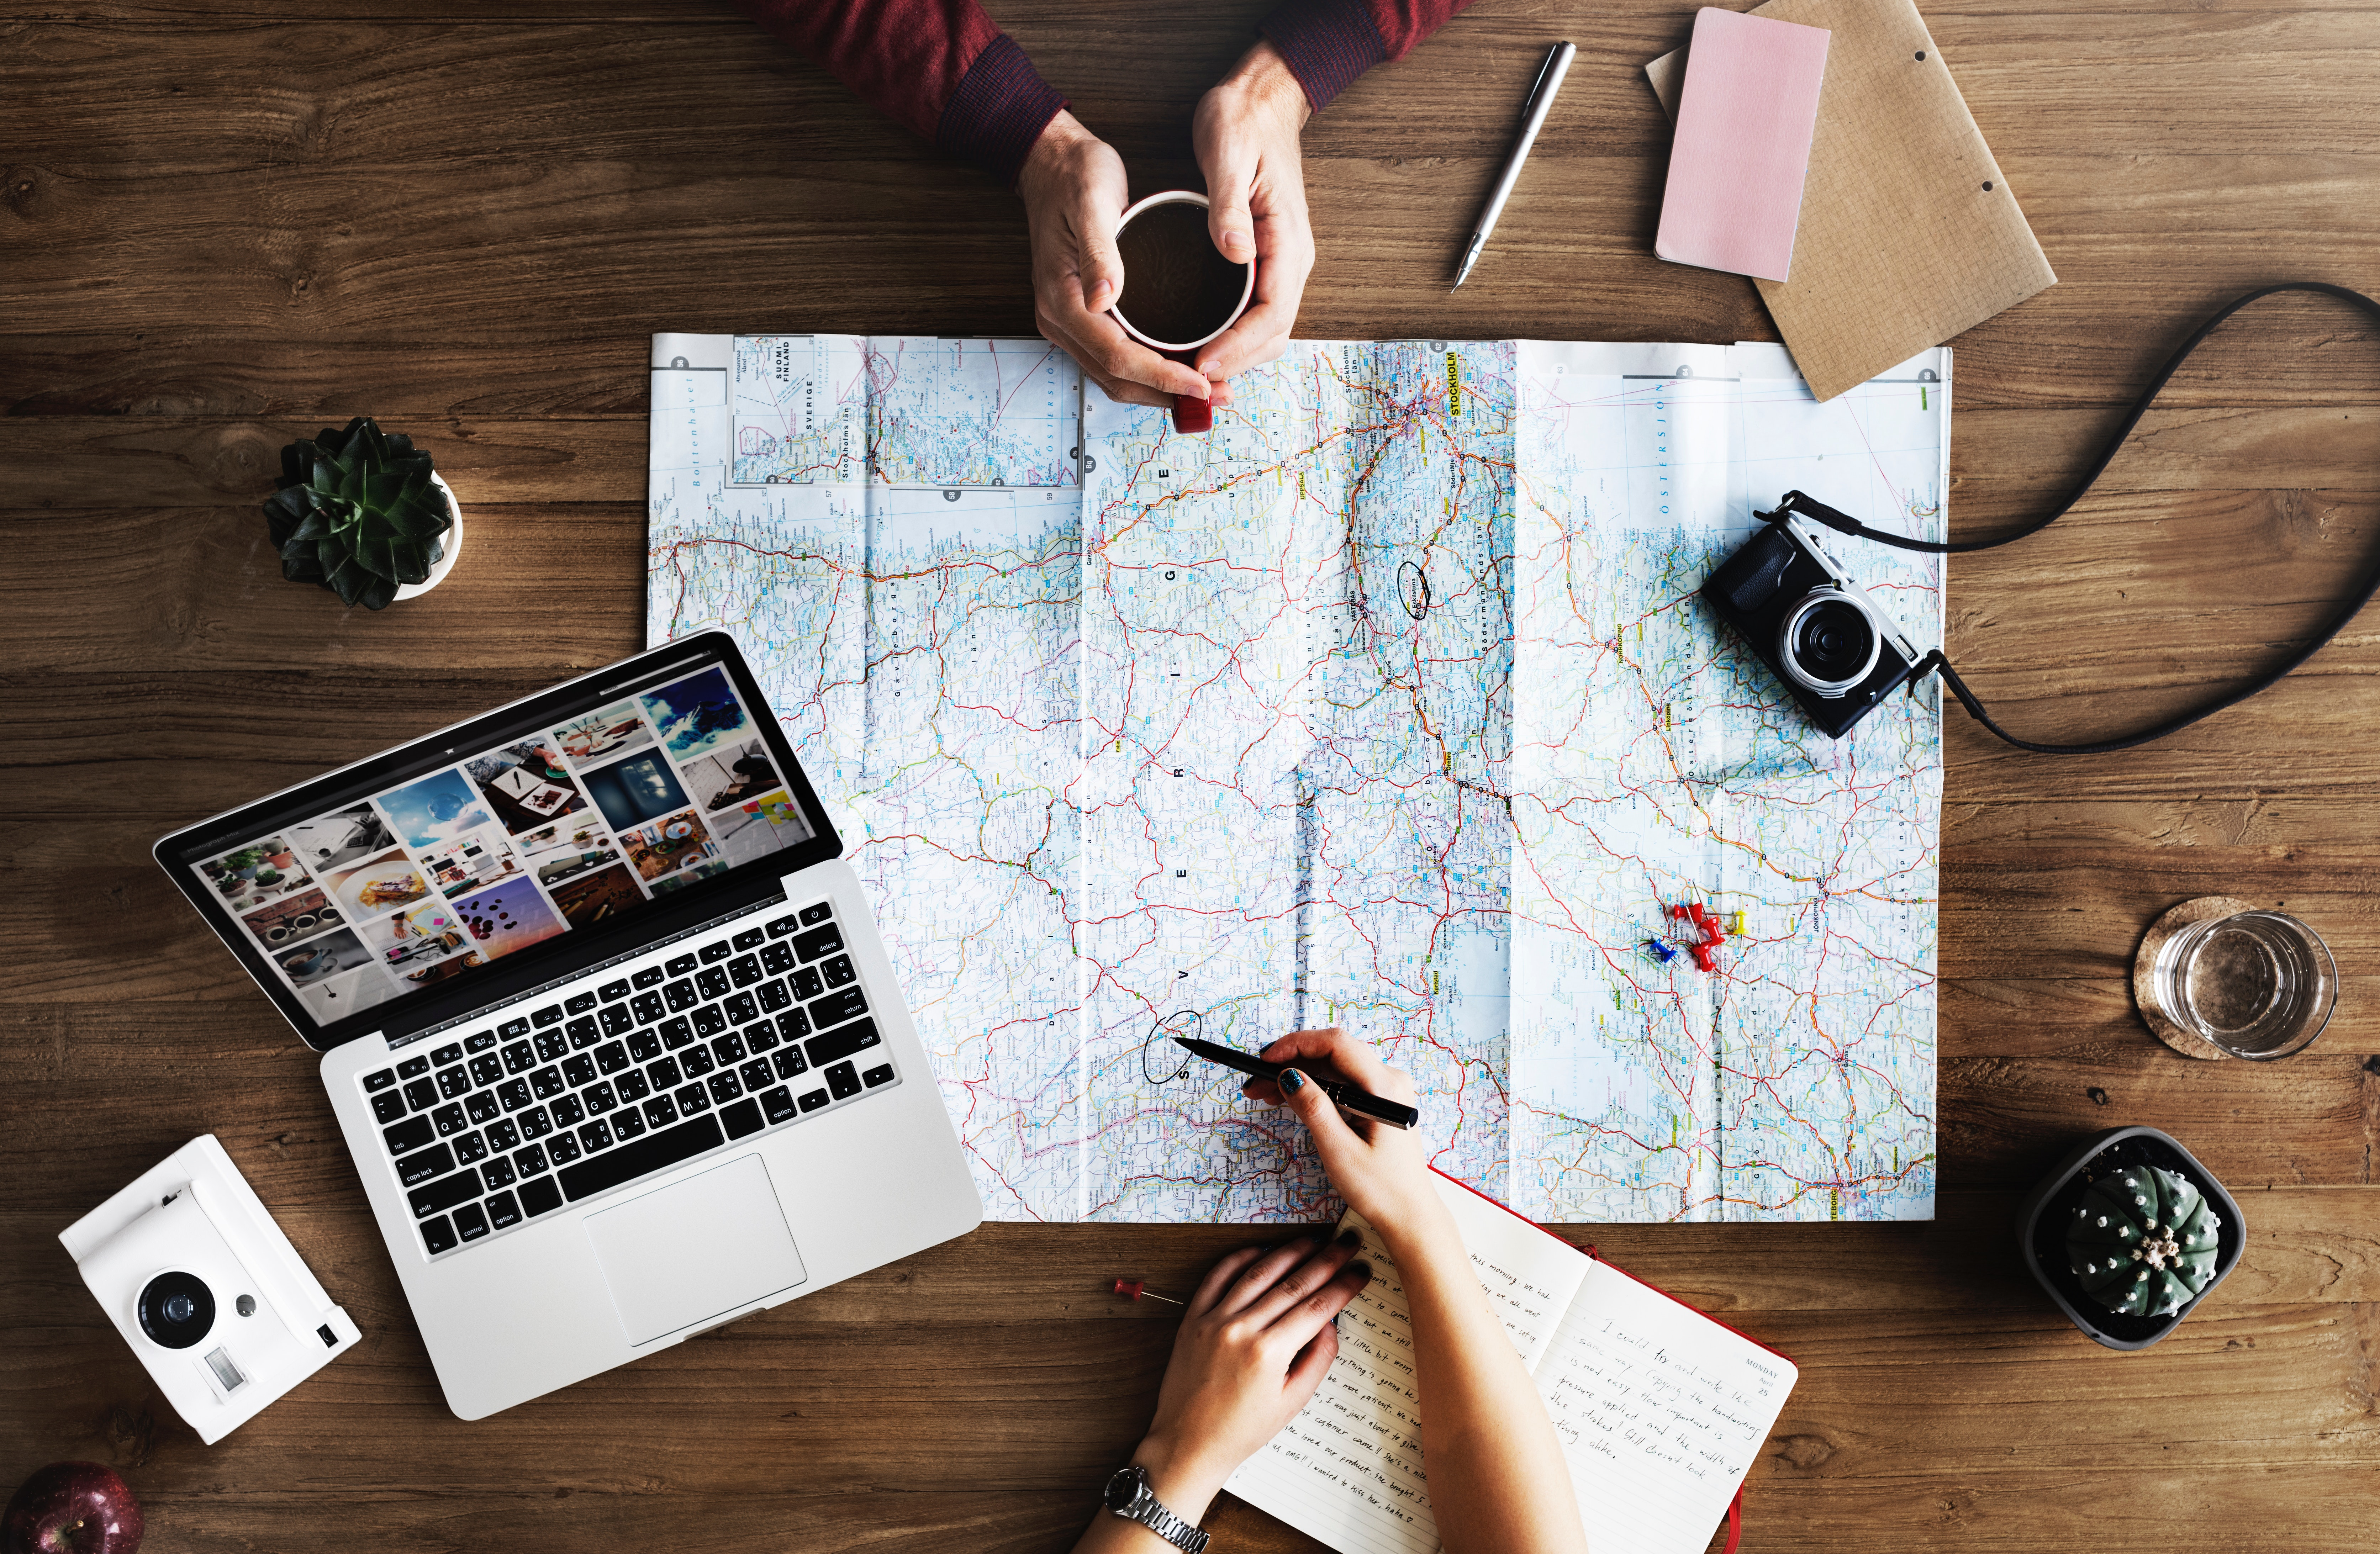 Planning, trips, writing